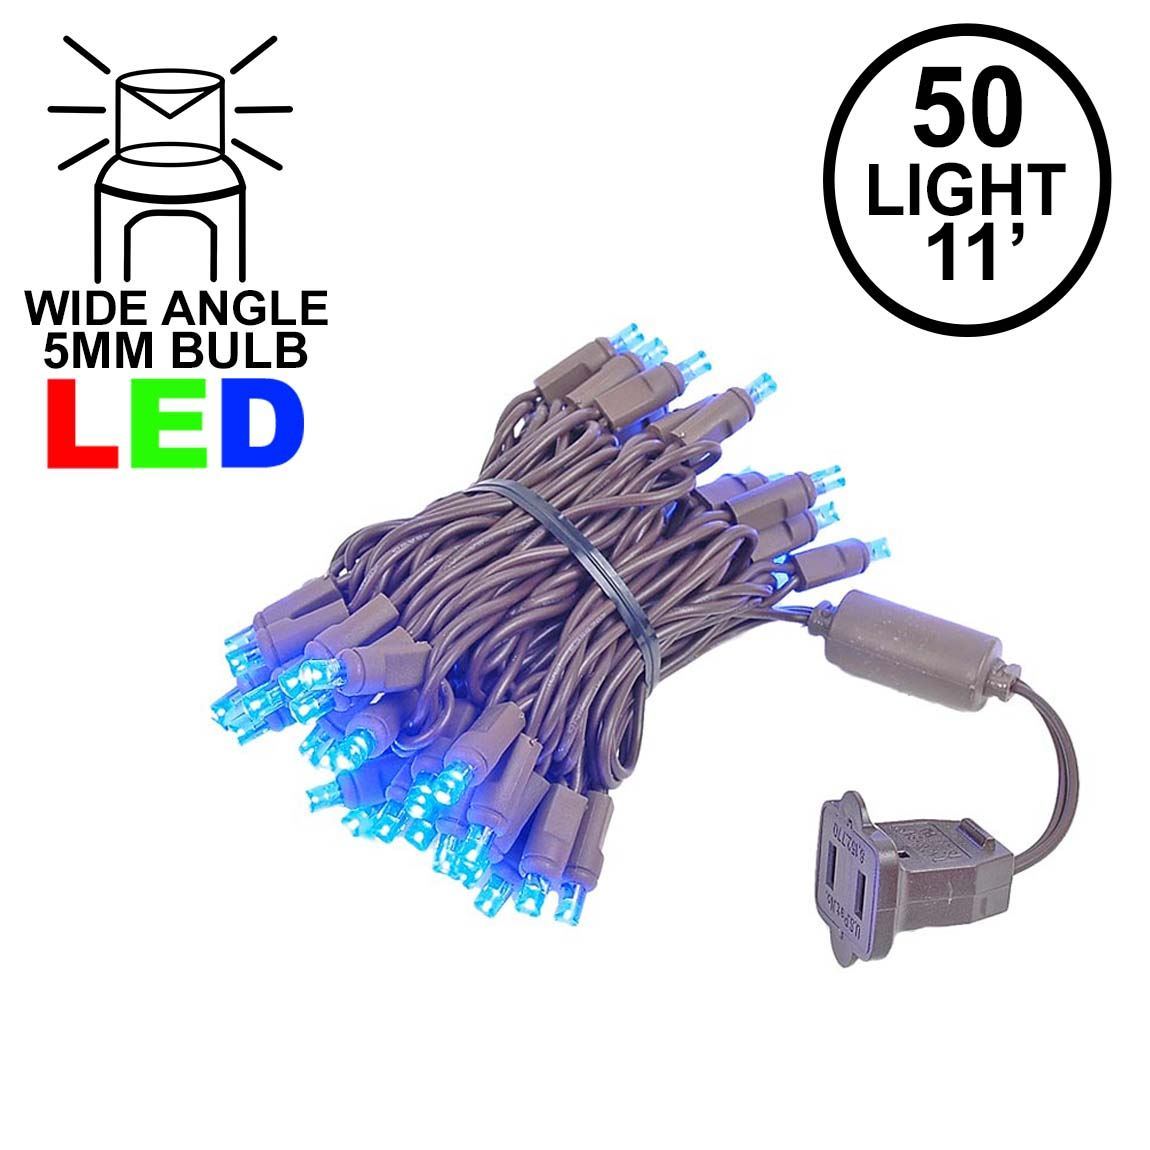 Picture of 50 LED Blue LED Christmas Lights 11' Long on Brown Wire